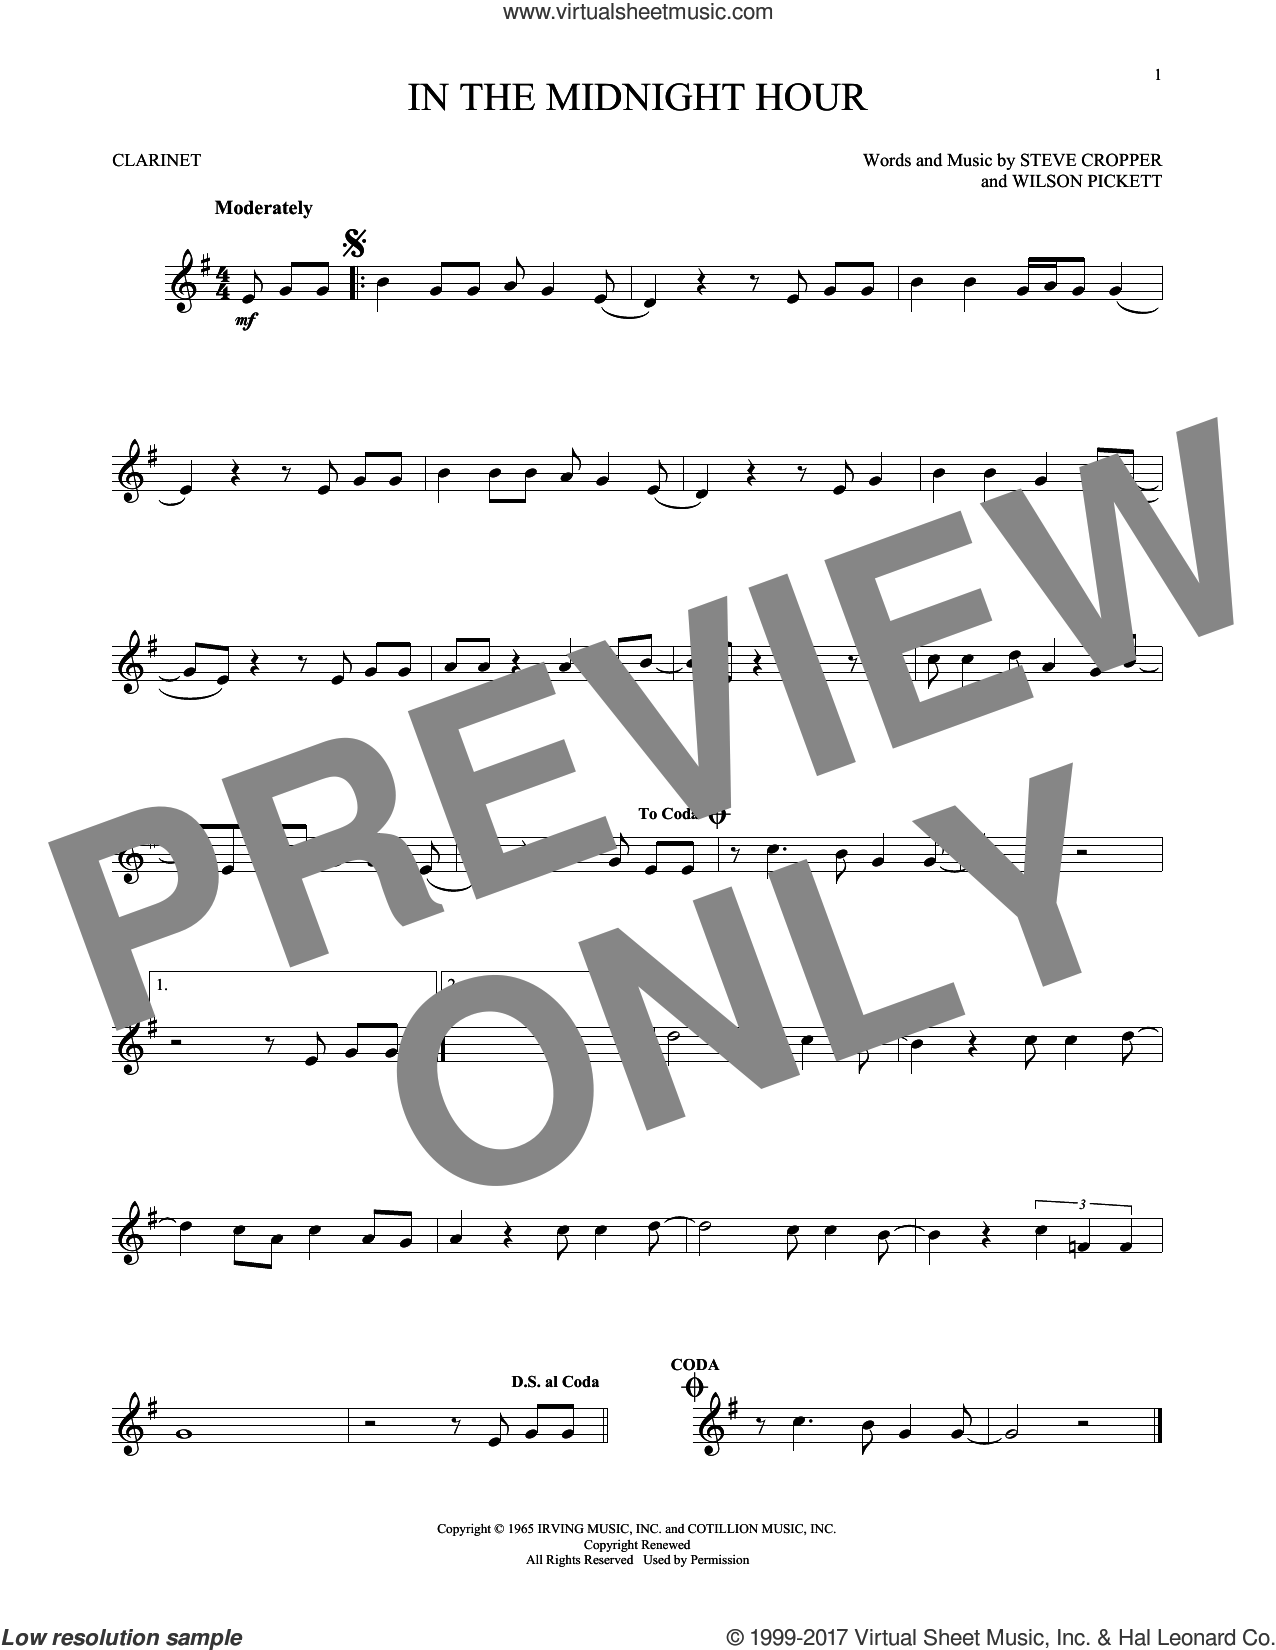 In The Midnight Hour sheet music for clarinet solo by Wilson Pickett and Steve Cropper, intermediate skill level